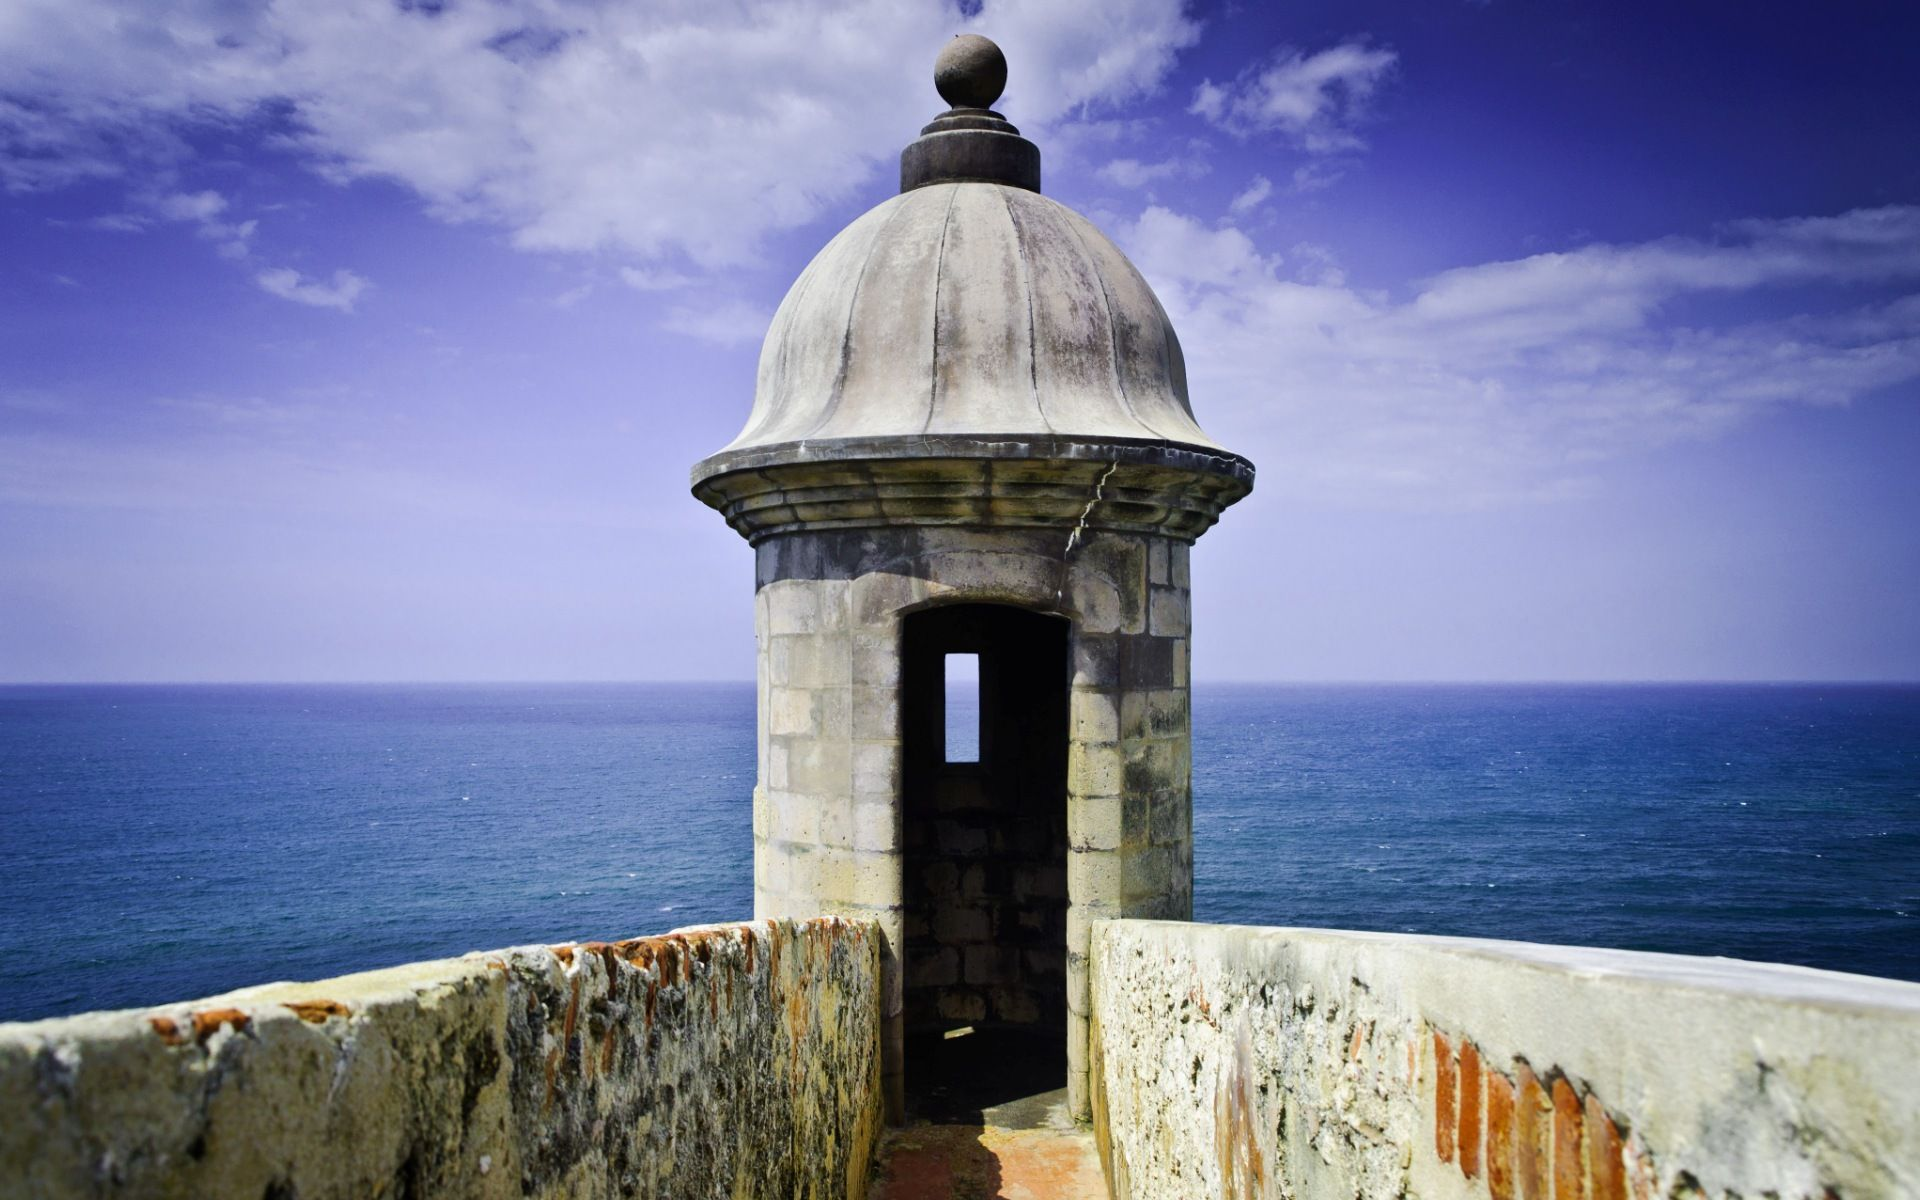 Puerto Rico Wallpapers Free - Wallpaper Cave